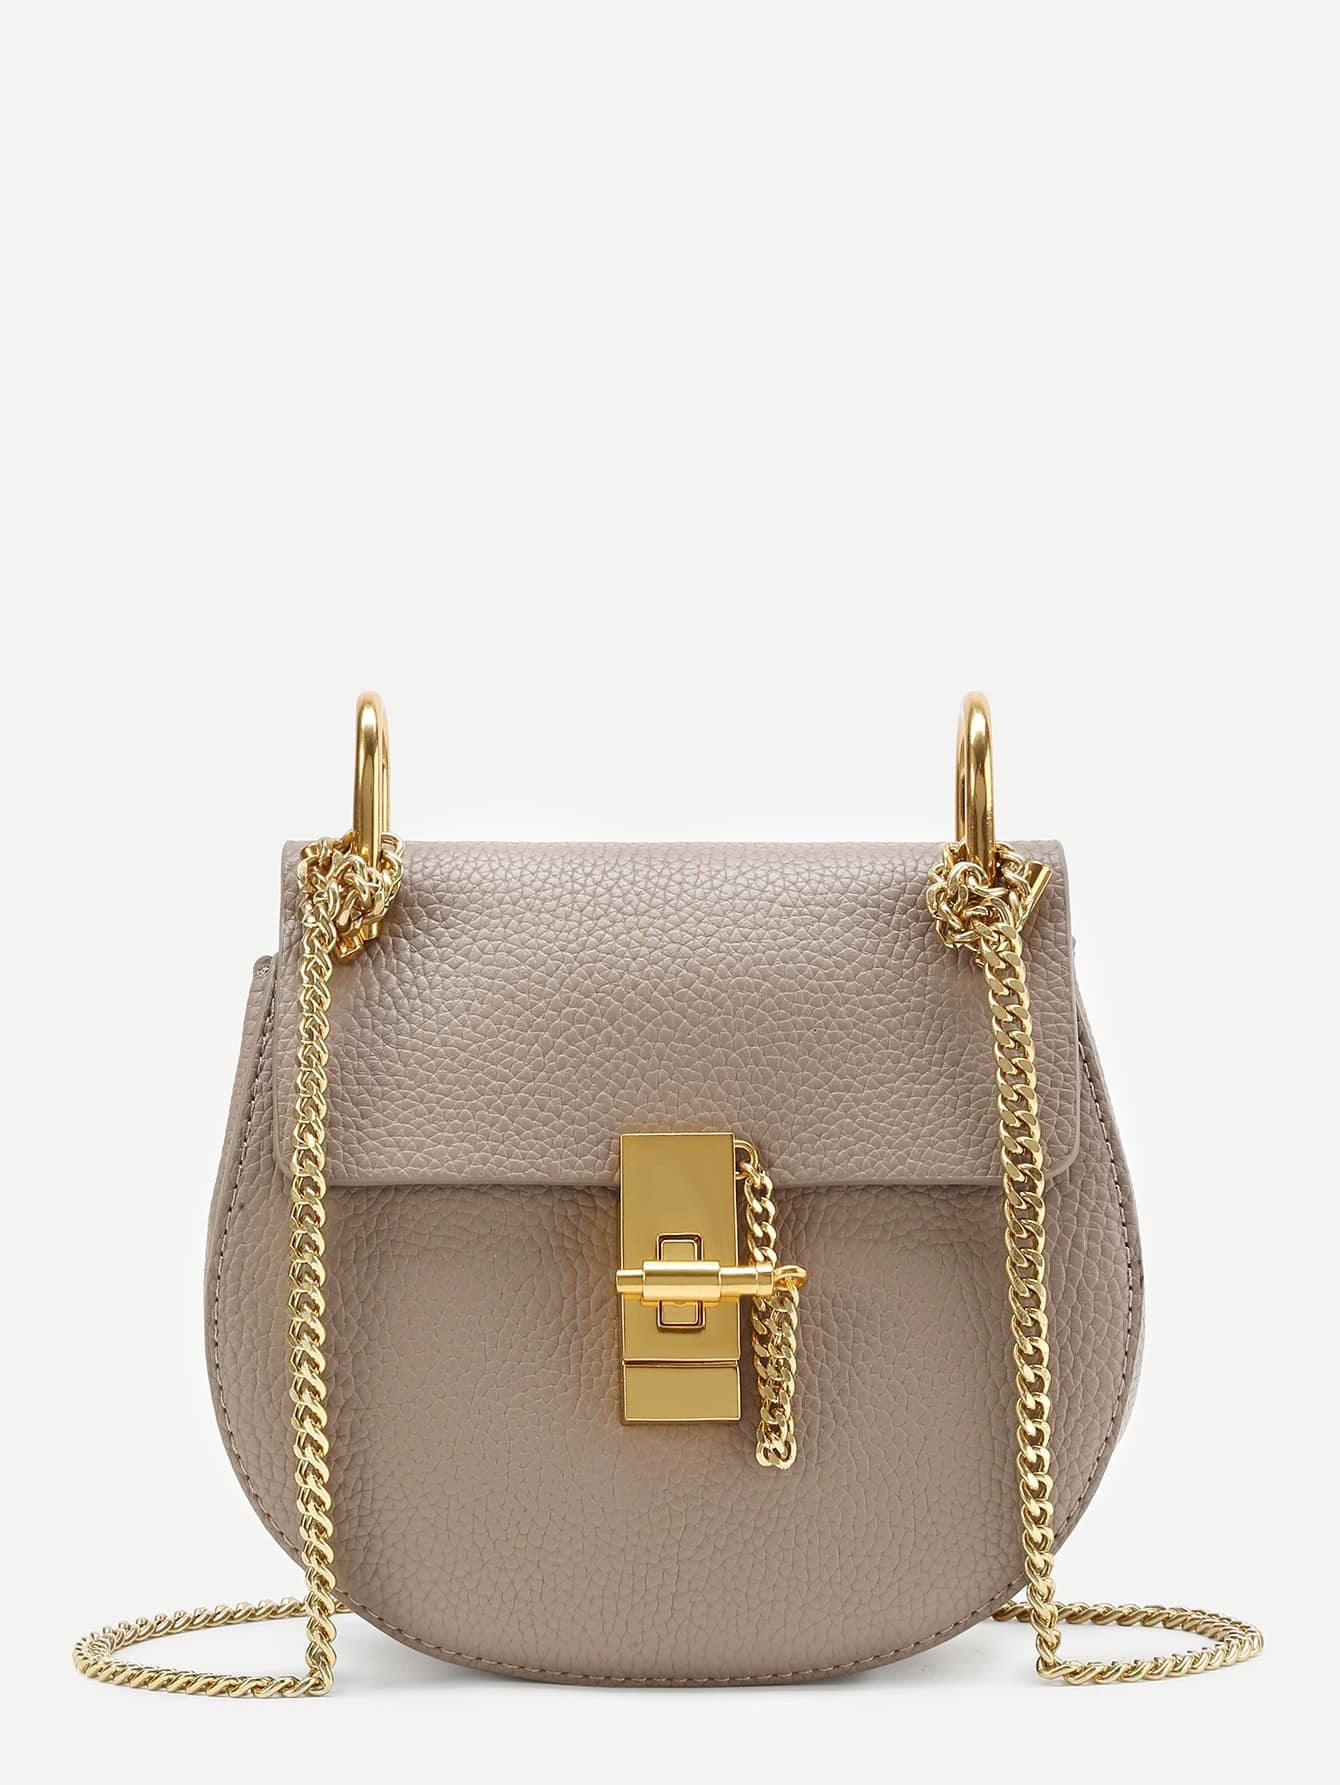 beige bag with gold details